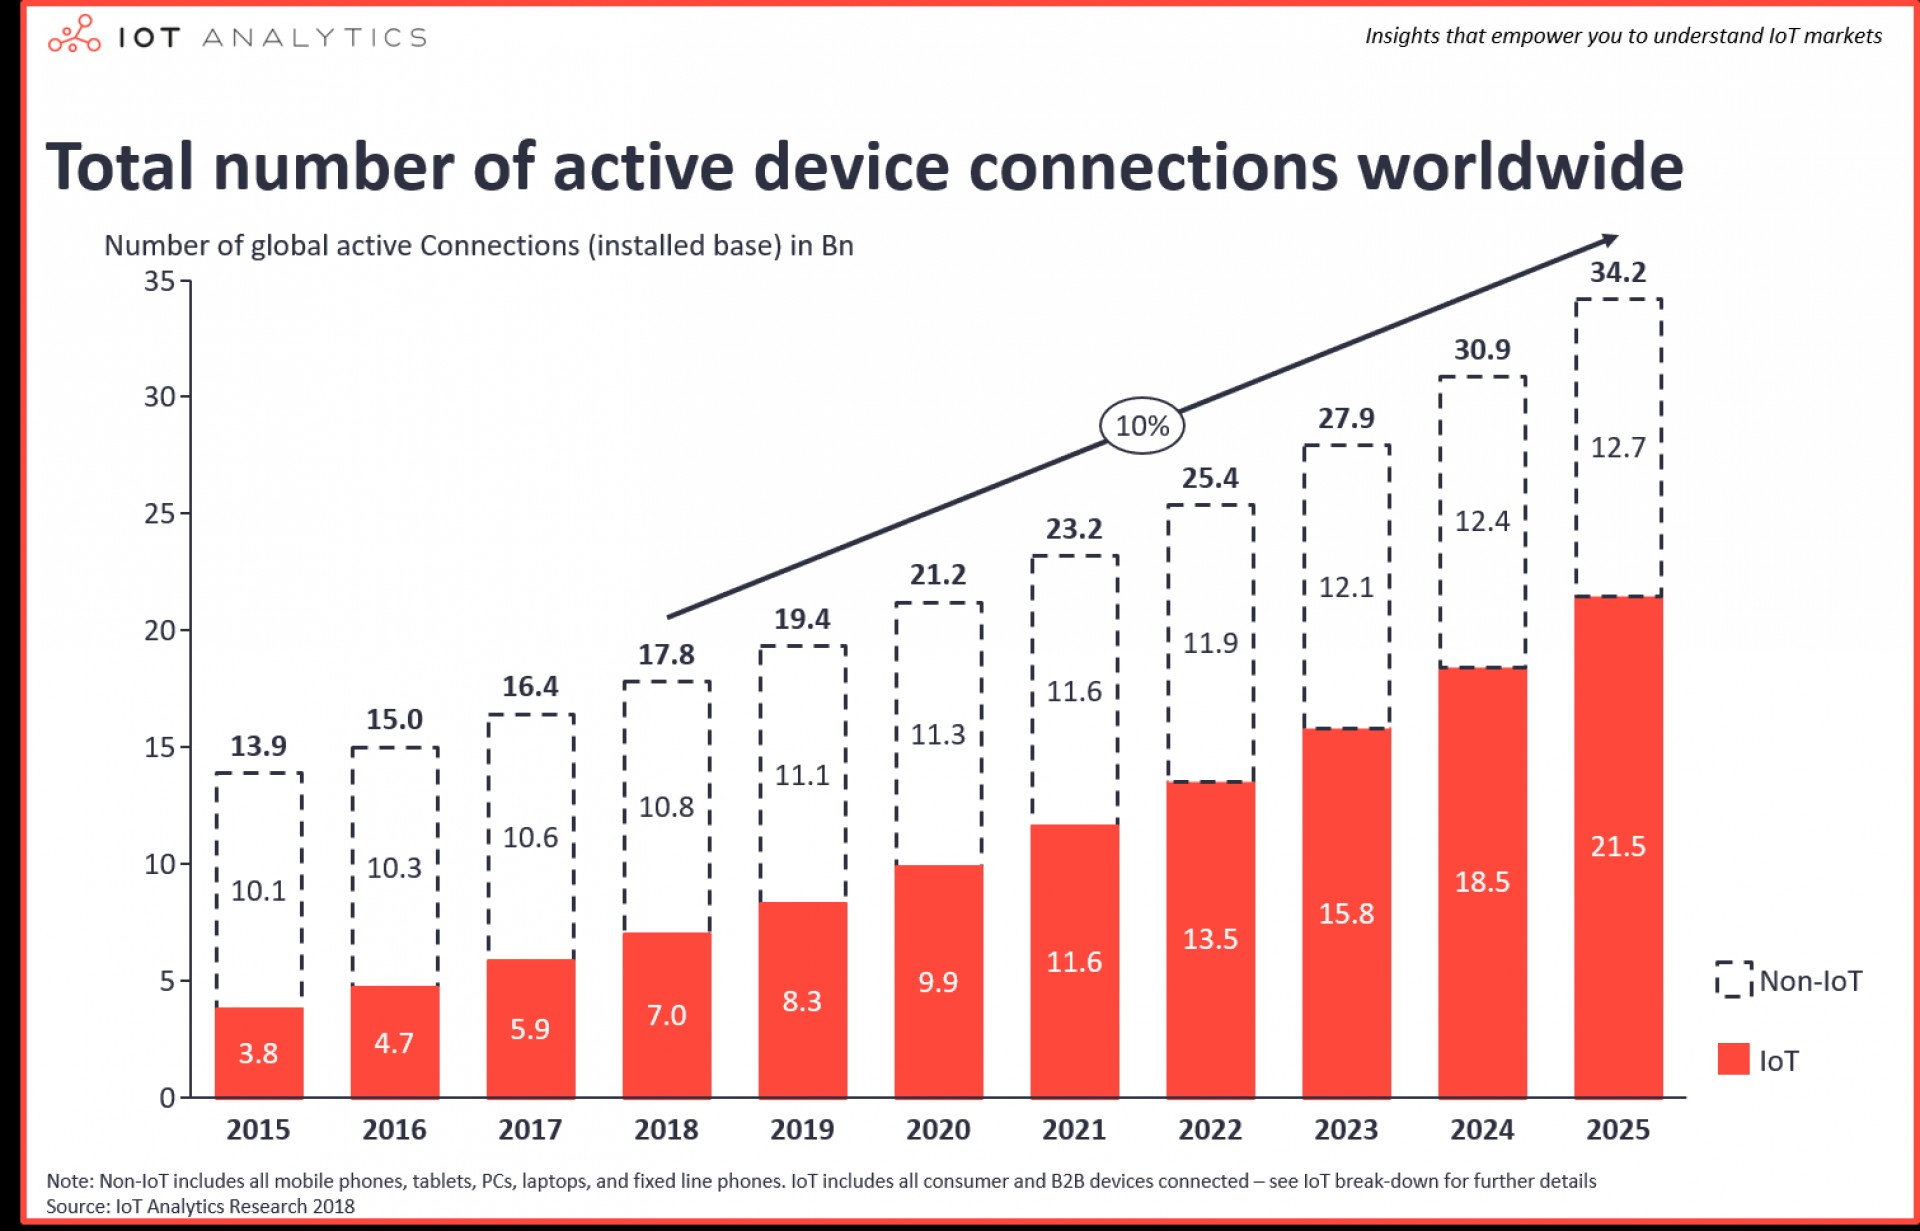 009 Number Of Global Device Connections Iot Devices Internet Things Research Paper Pdf Dreaded 2018 1920